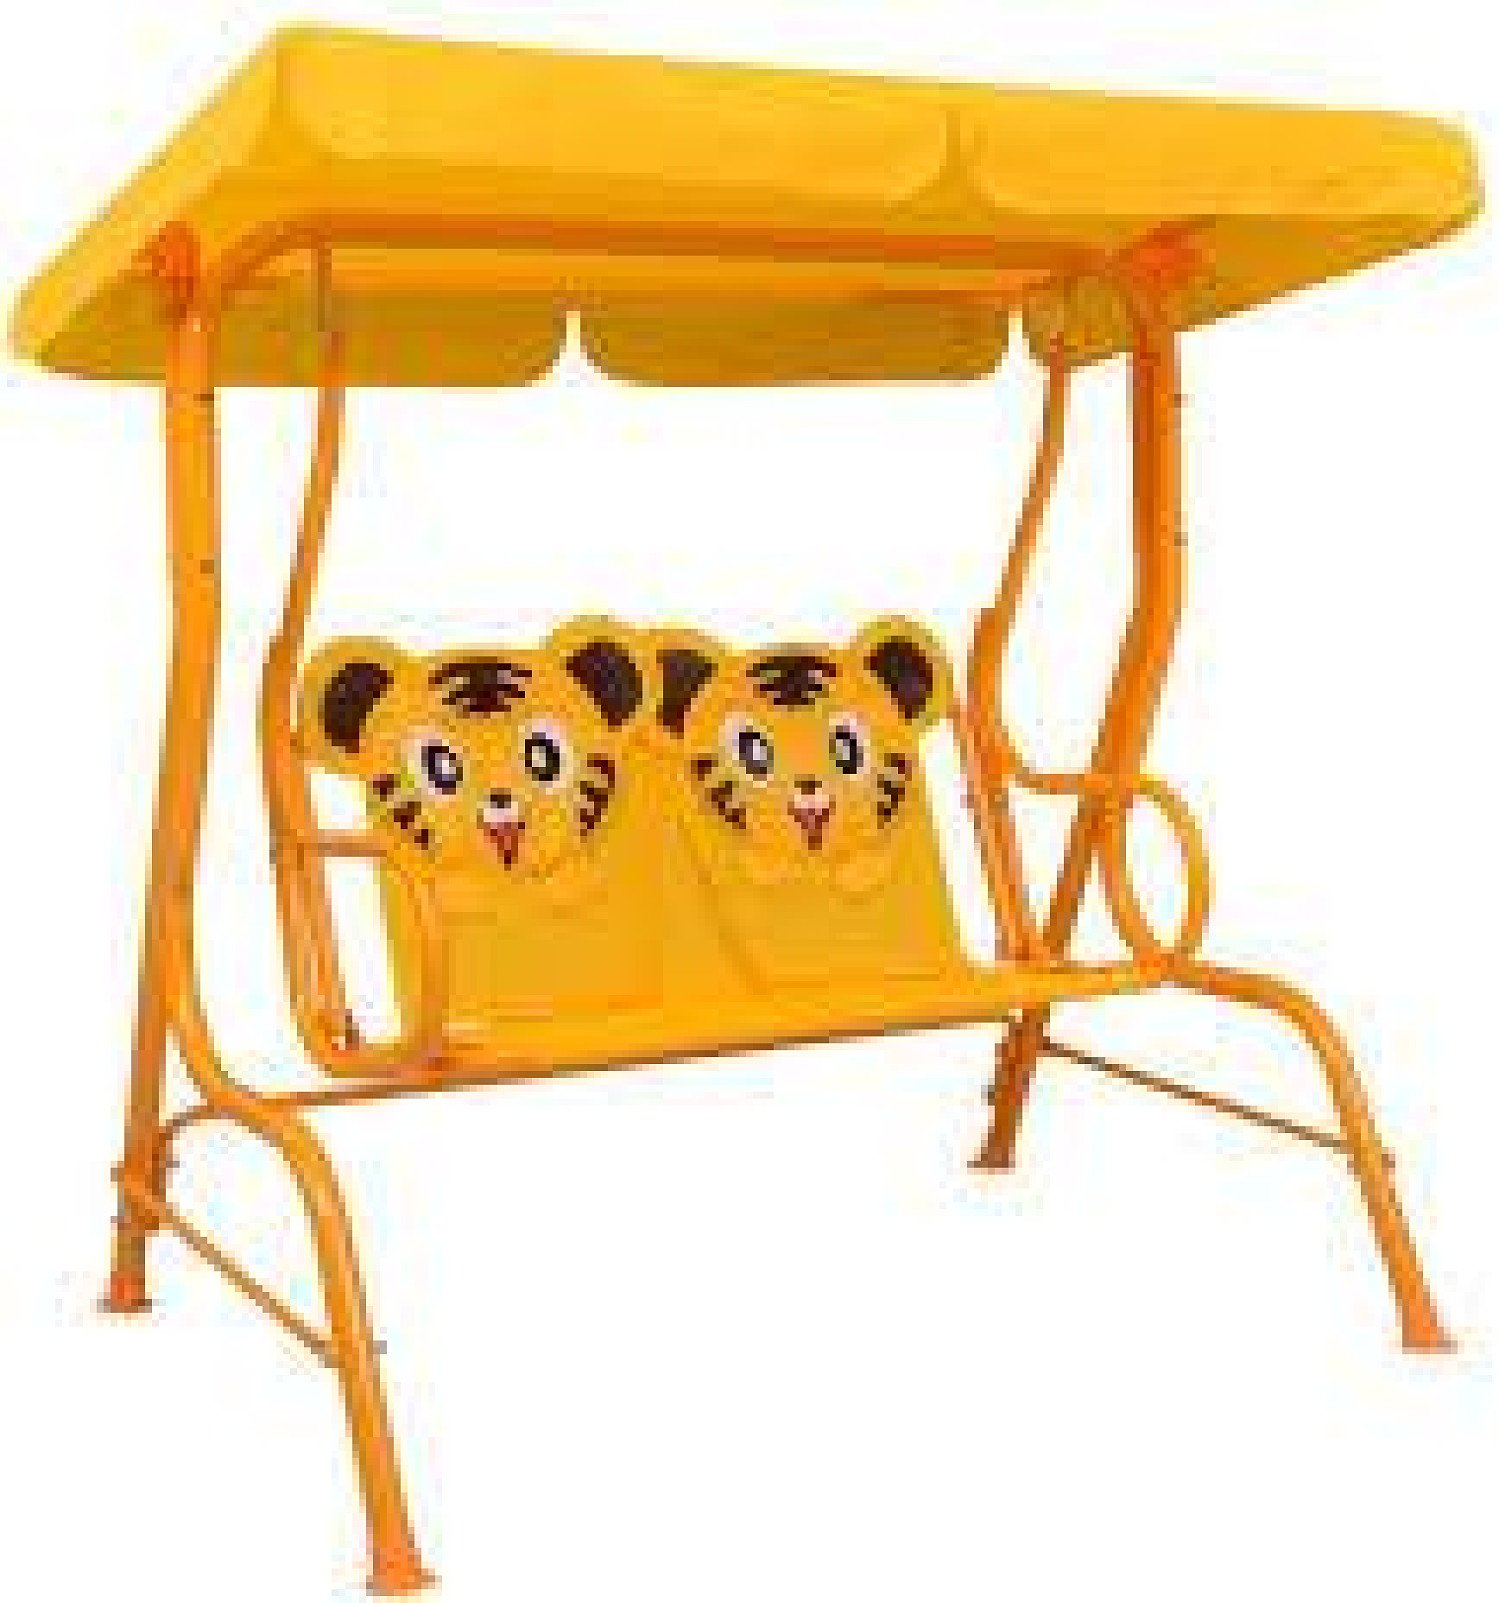 Kids Swing Bench 115x75x110 cm Fabric Free Postage